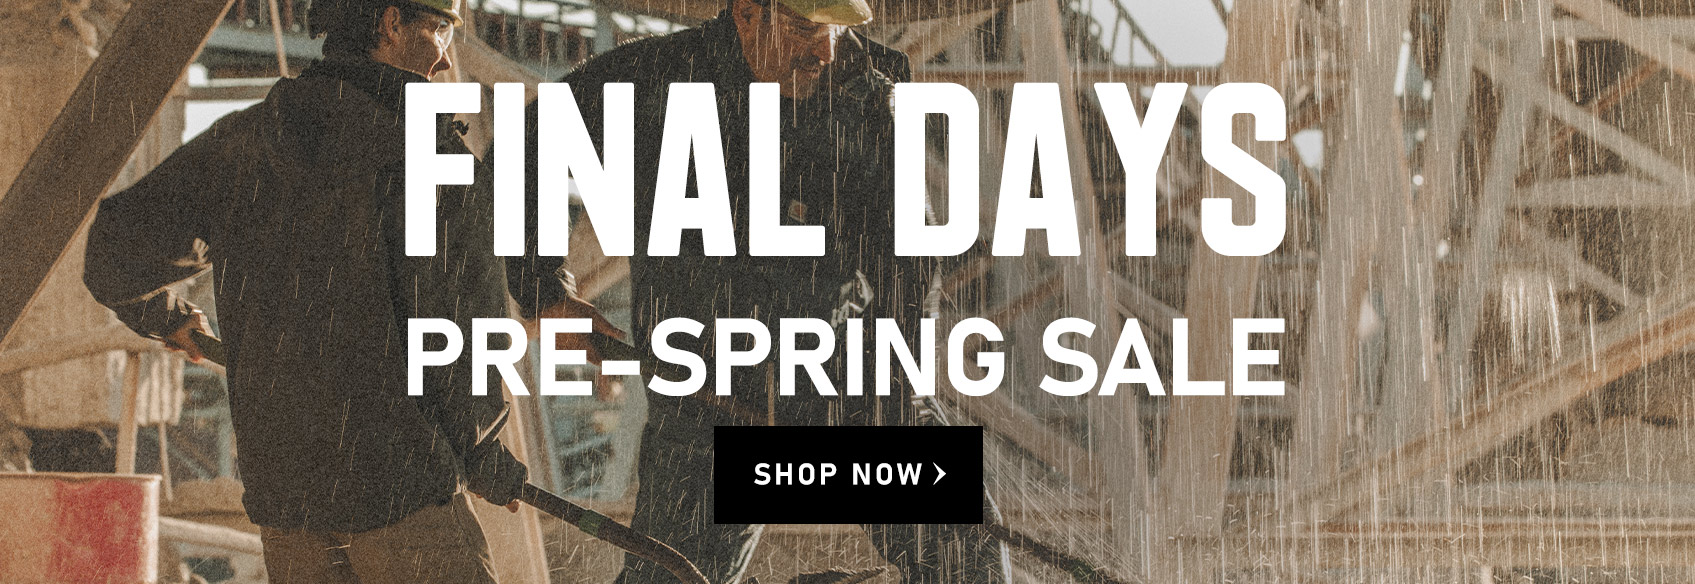 Final Days of the Pre-Spring Sale